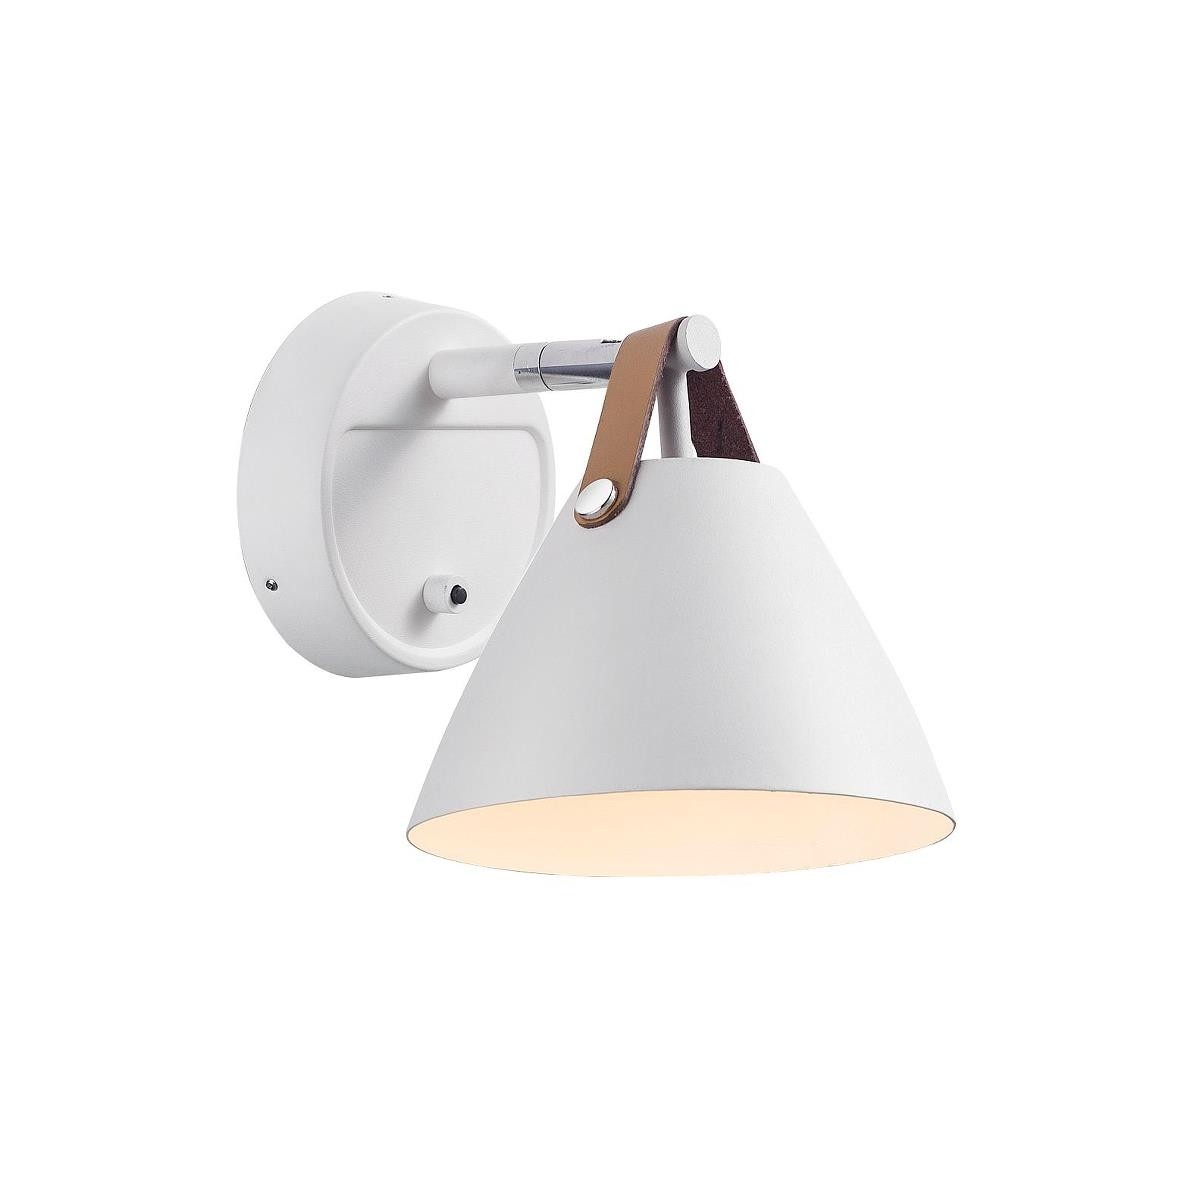 Strap 15 wall light - white